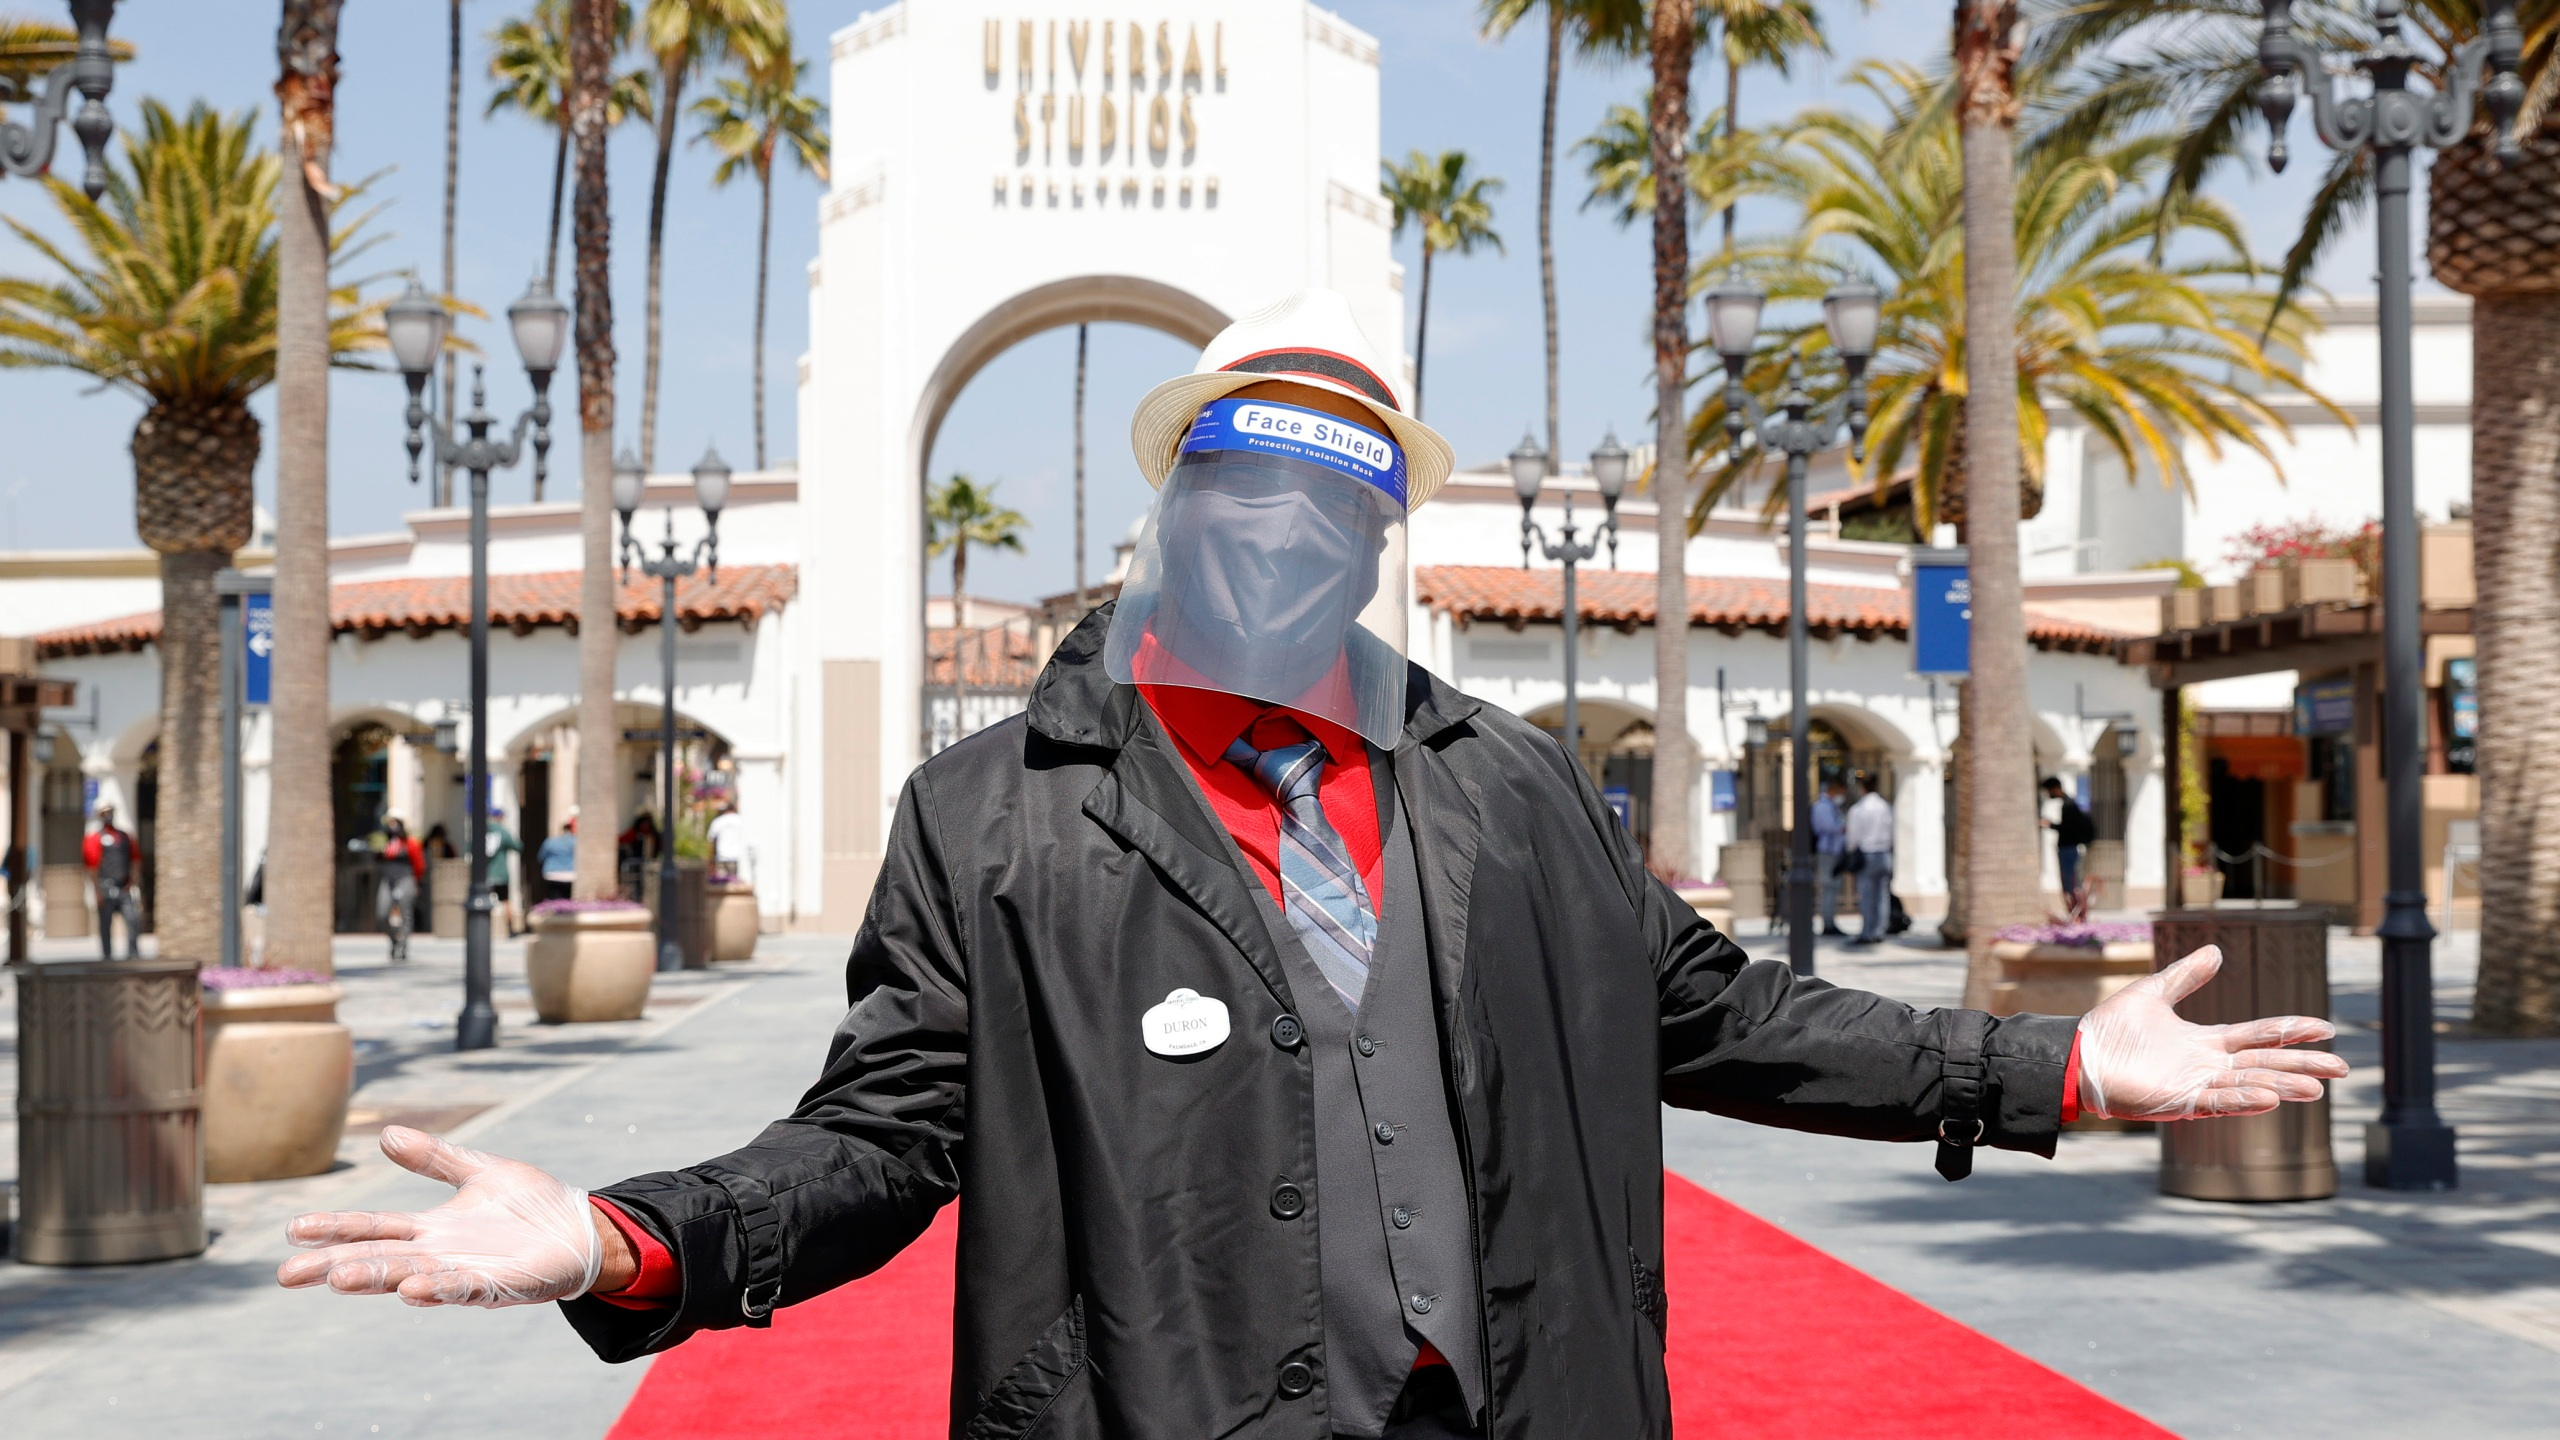 An employee is seen ahead of the grand reopening of Universal Studios Hollywood on April 15, 2021, in Universal City, California. (Amy Sussman/Getty Images)